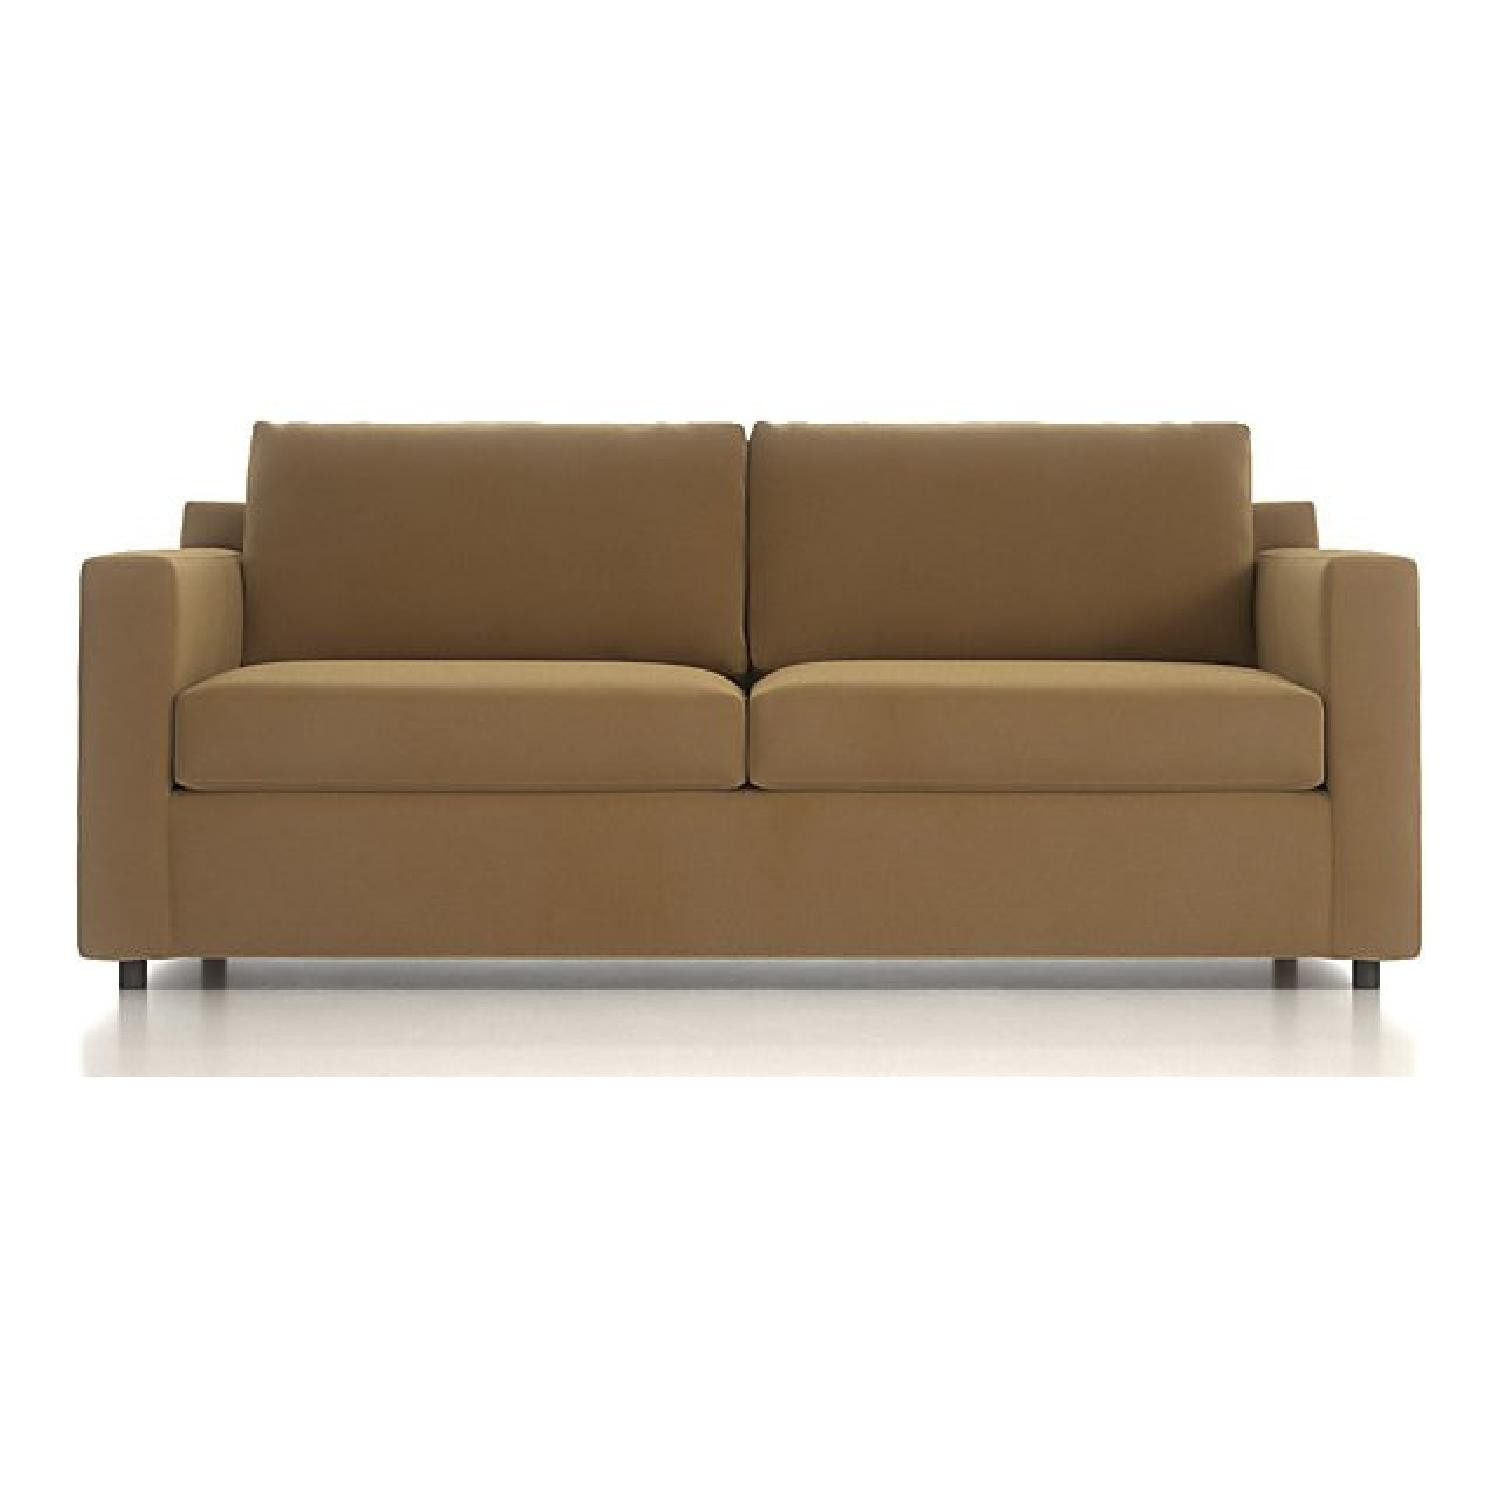 Crate & Barrel Barrett Sofa